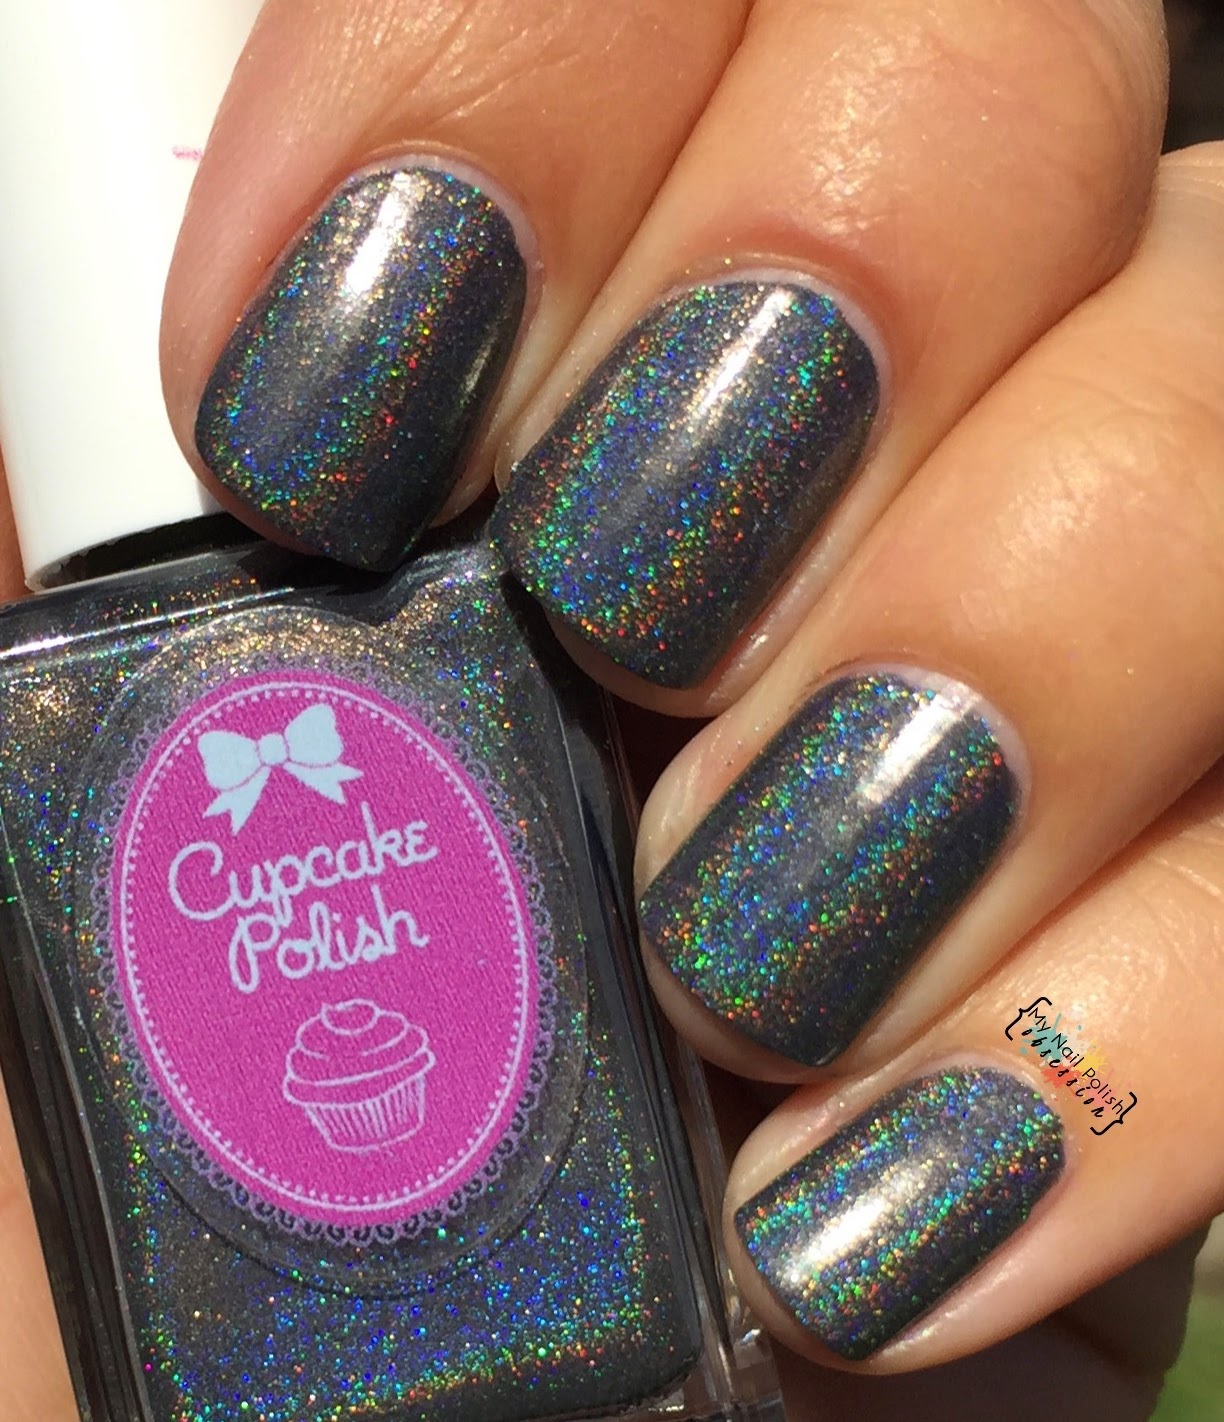 Cupcake Polish KaBloom